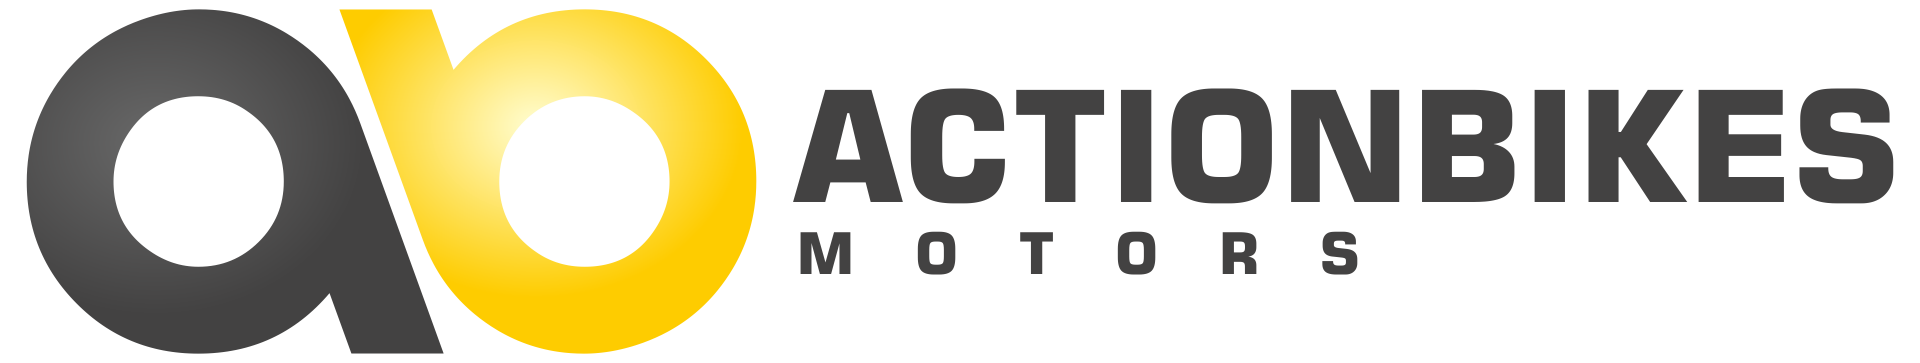 Actionbikes Logo.